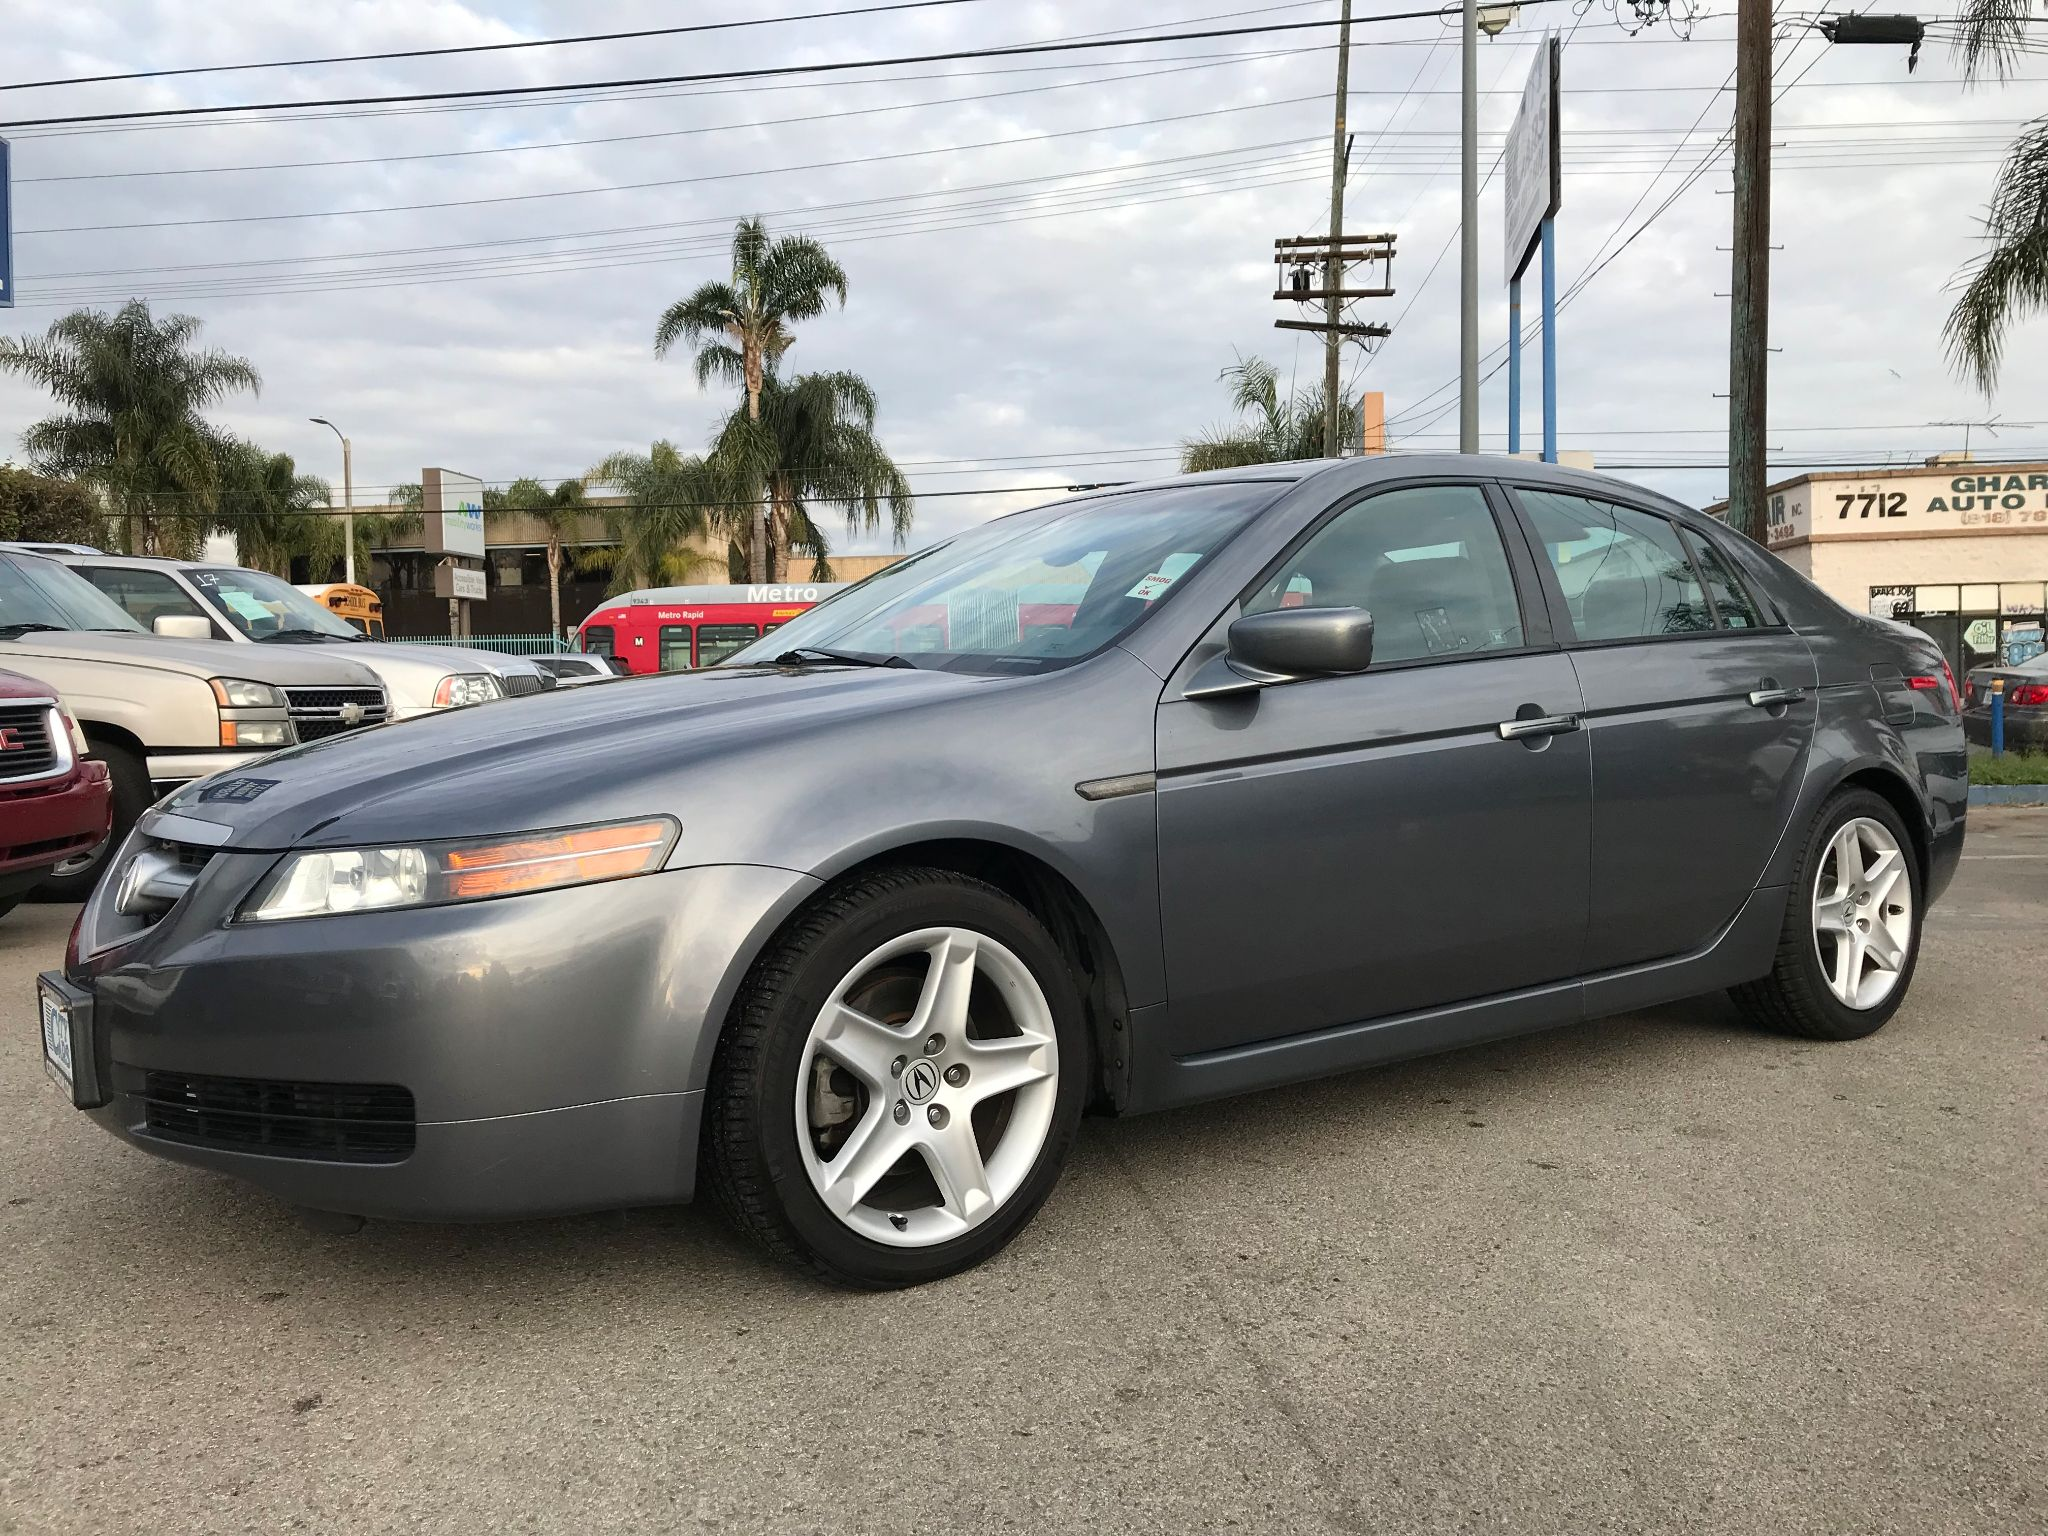 Used Acura TL Navigation System At City Cars Warehouse INC - 2006 acura tl navigation